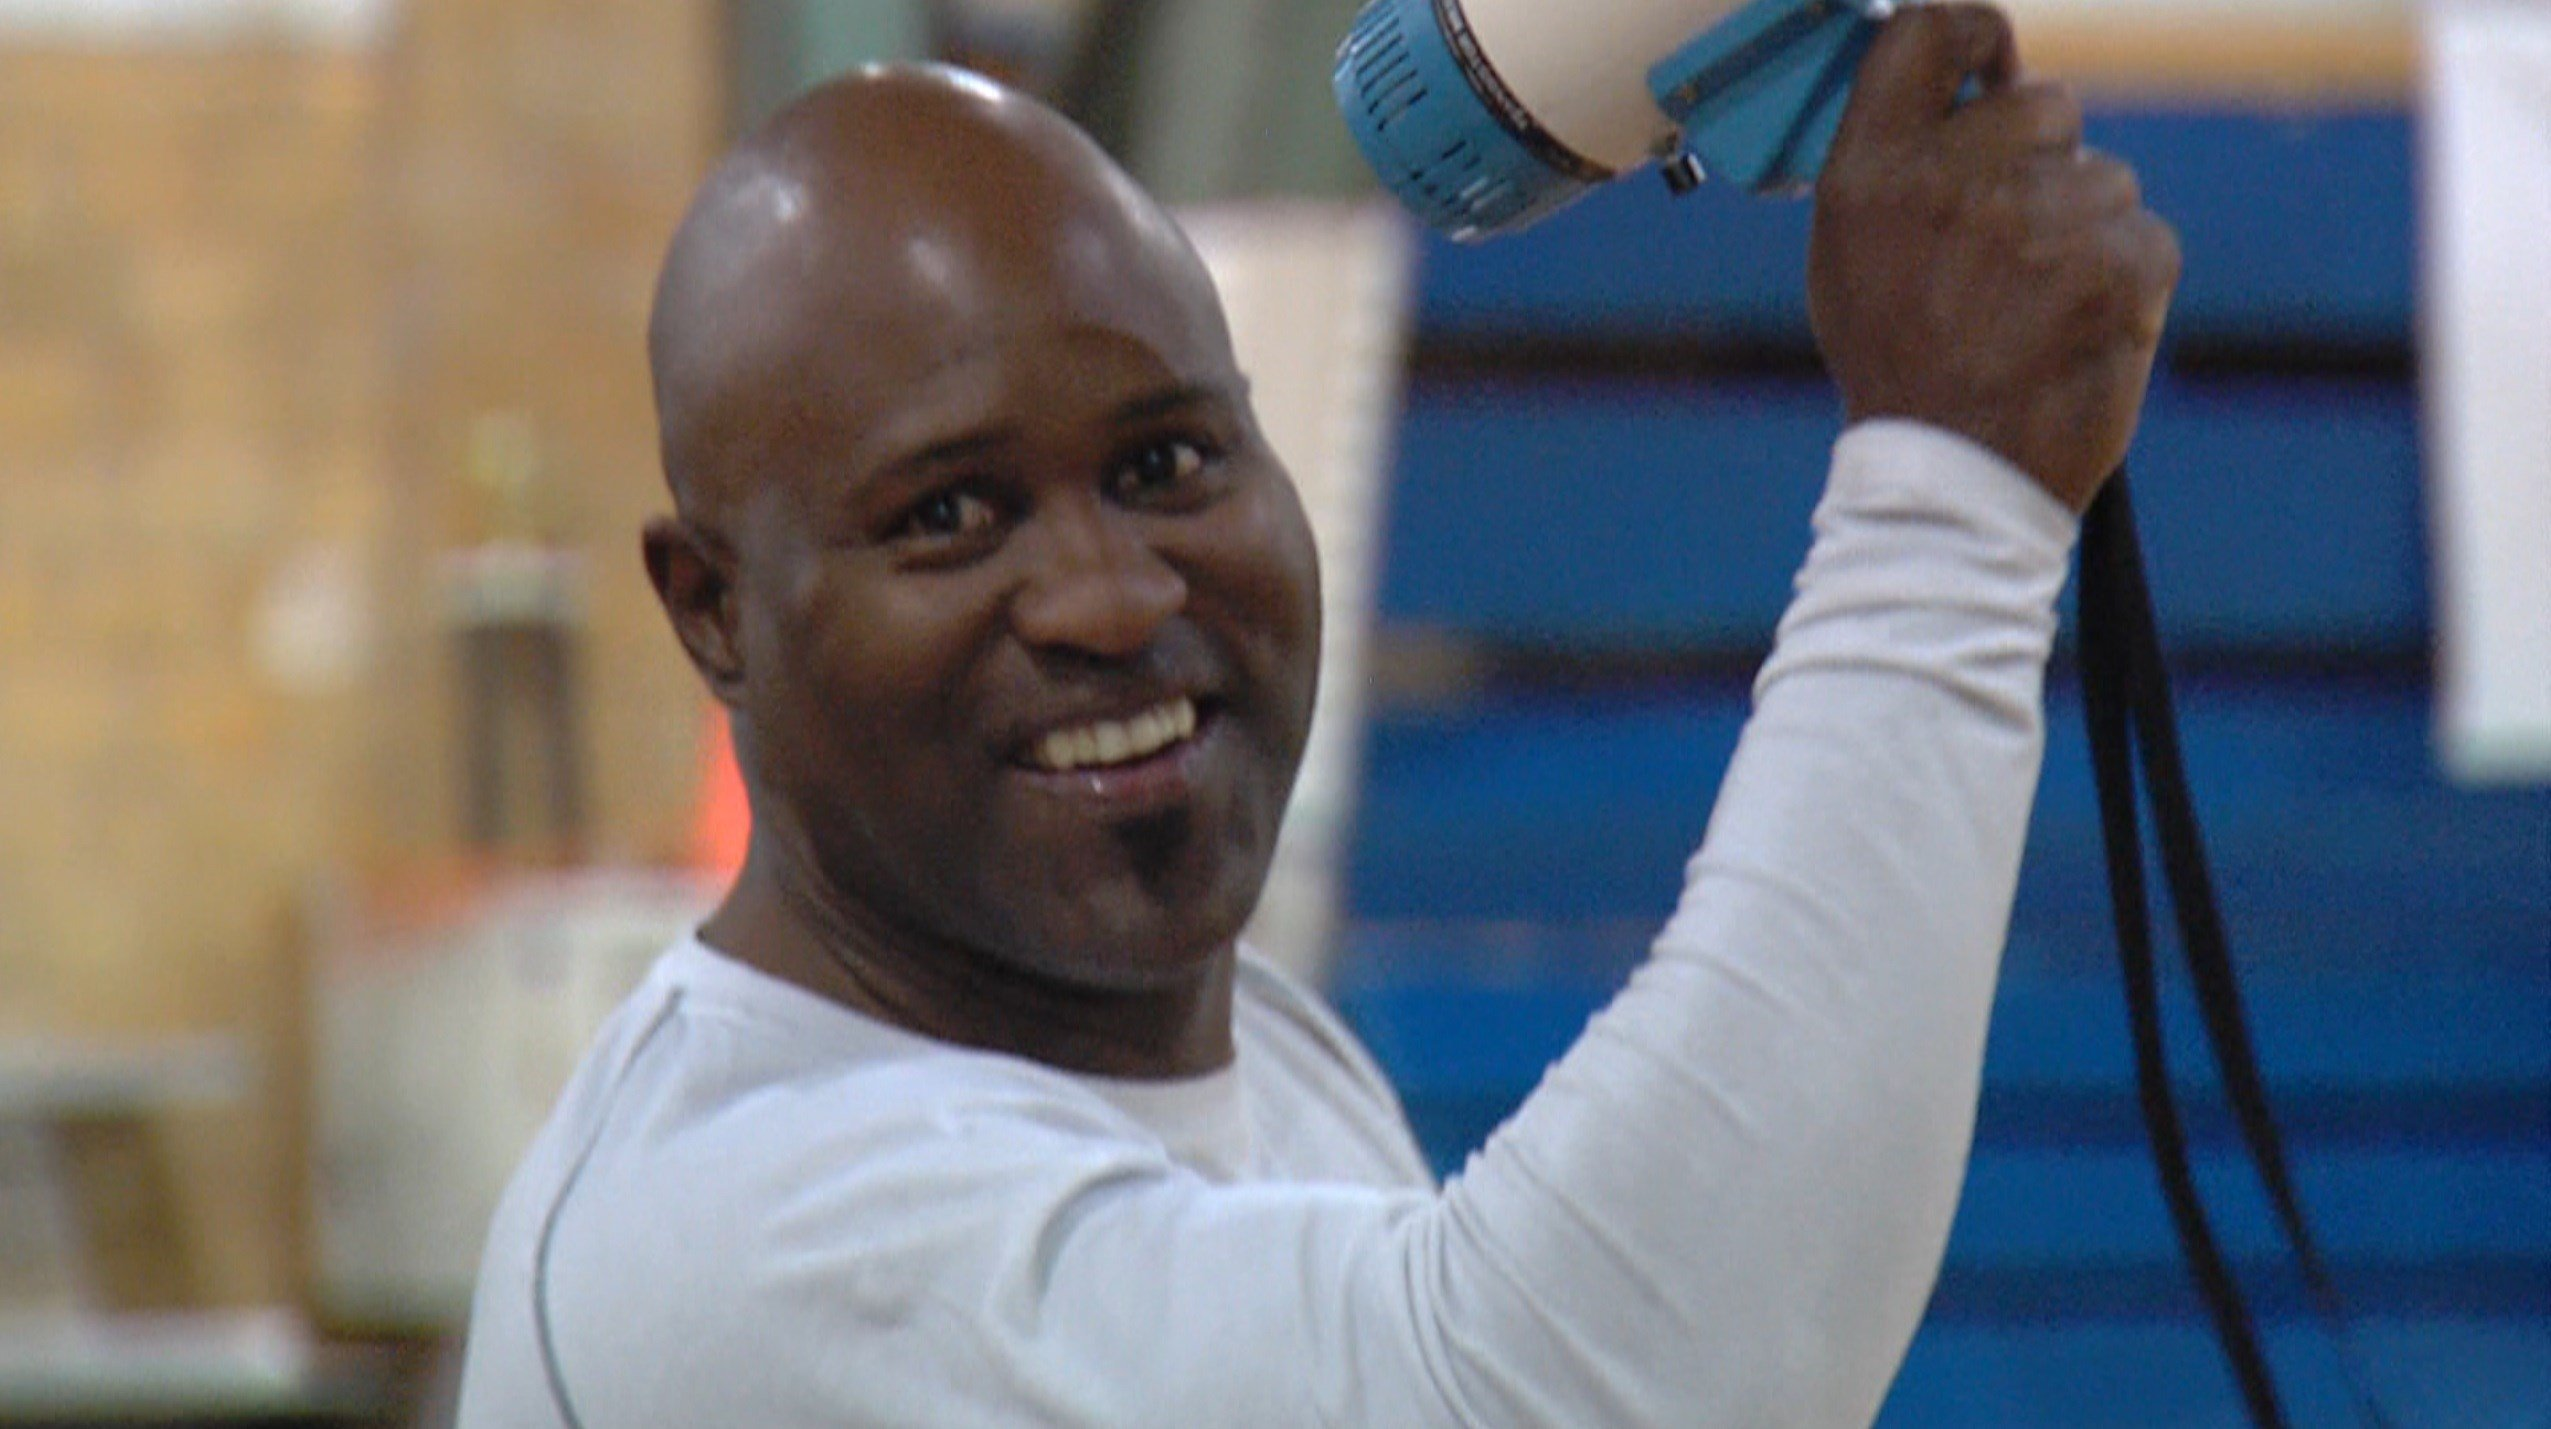 Gym owner Rodney Walker and local promoter Jordan Maxey are teaming up to produce this year's Spring Sting. Doors open at 7 p.m. on Saturday night at the Skywalker Sports Complex in Decatur.